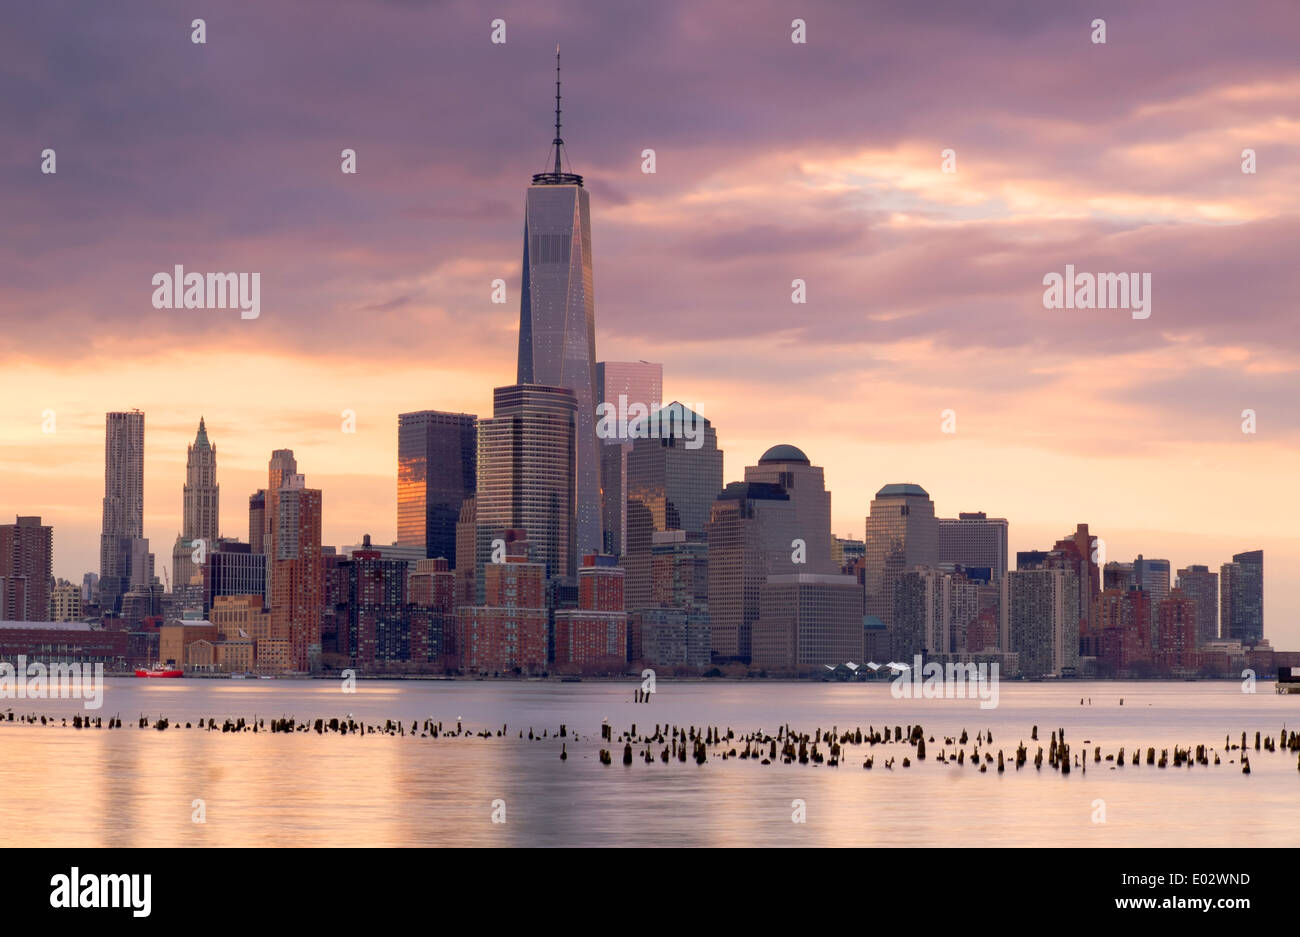 New York Skyline Viewed over the Hudson River, New York, USA - Stock Image